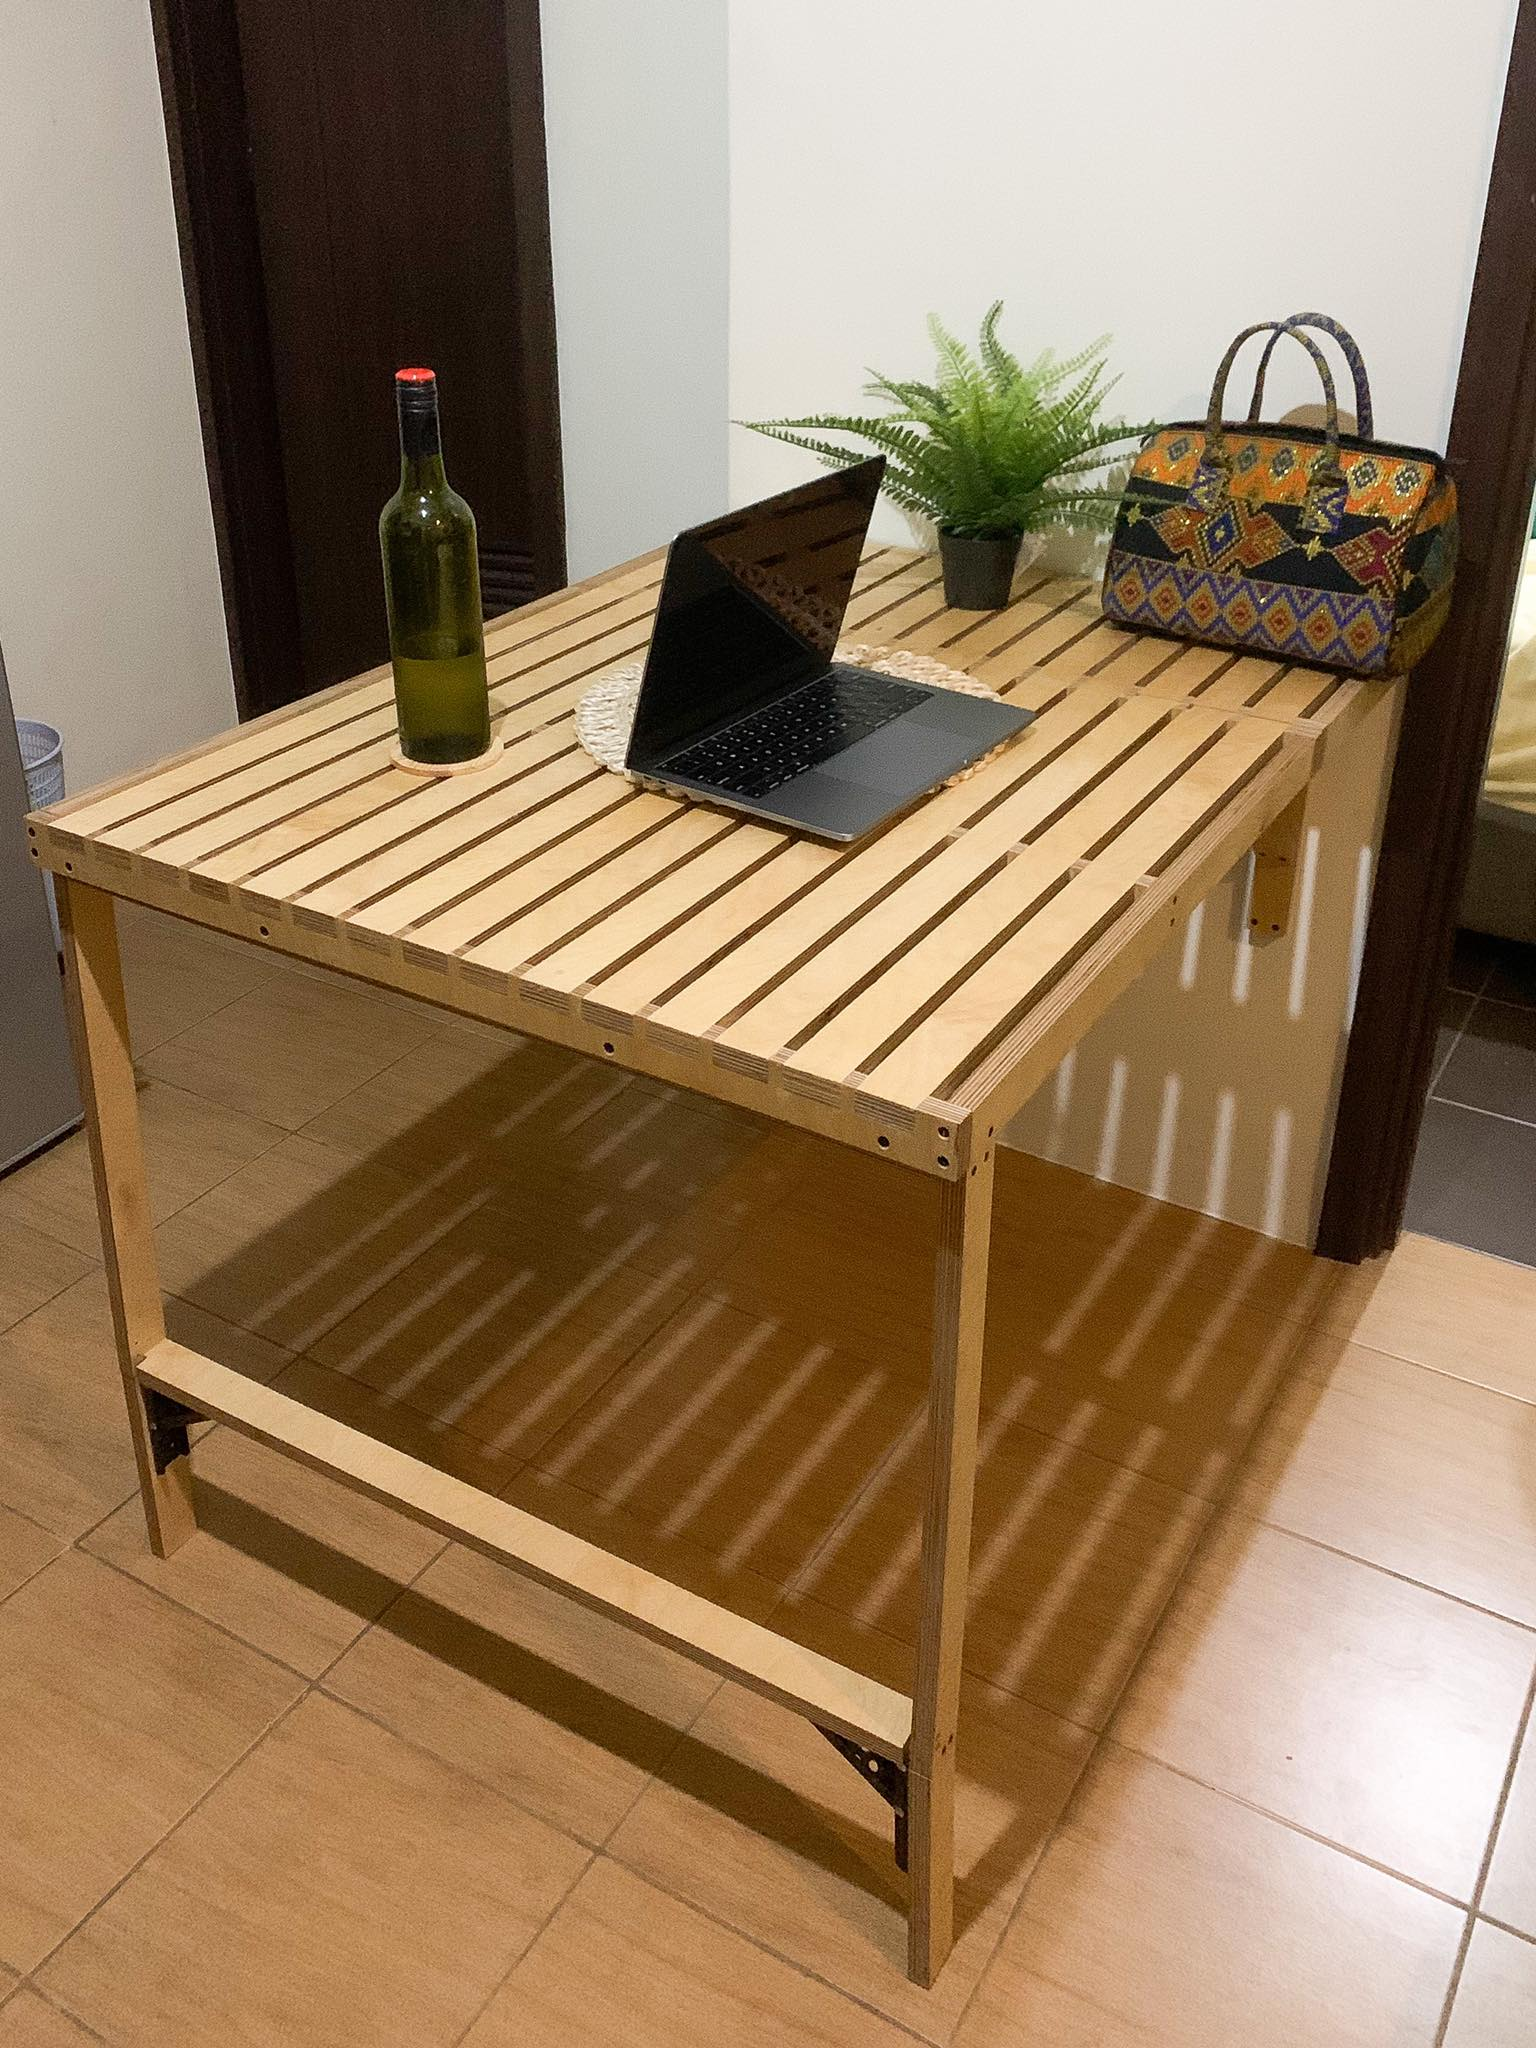 space-saving table with laptop and plants on top